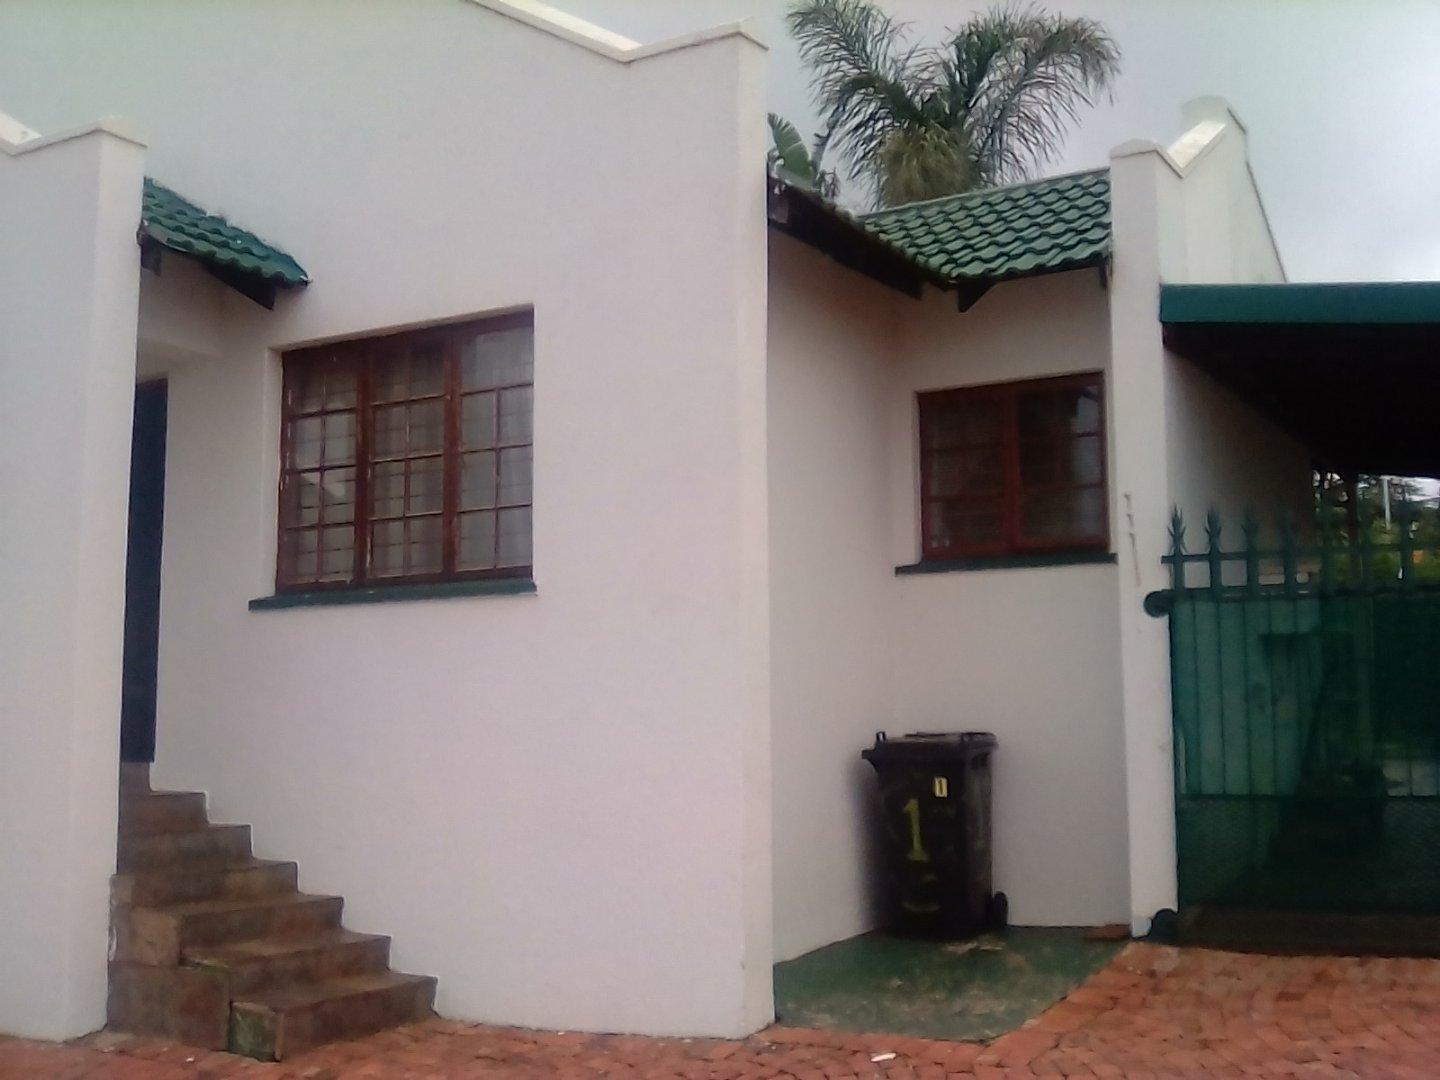 Krugersdorp, Krugersdorp North Property  | Houses For Sale Krugersdorp North, Krugersdorp North, Apartment 3 bedrooms property for sale Price:895,000